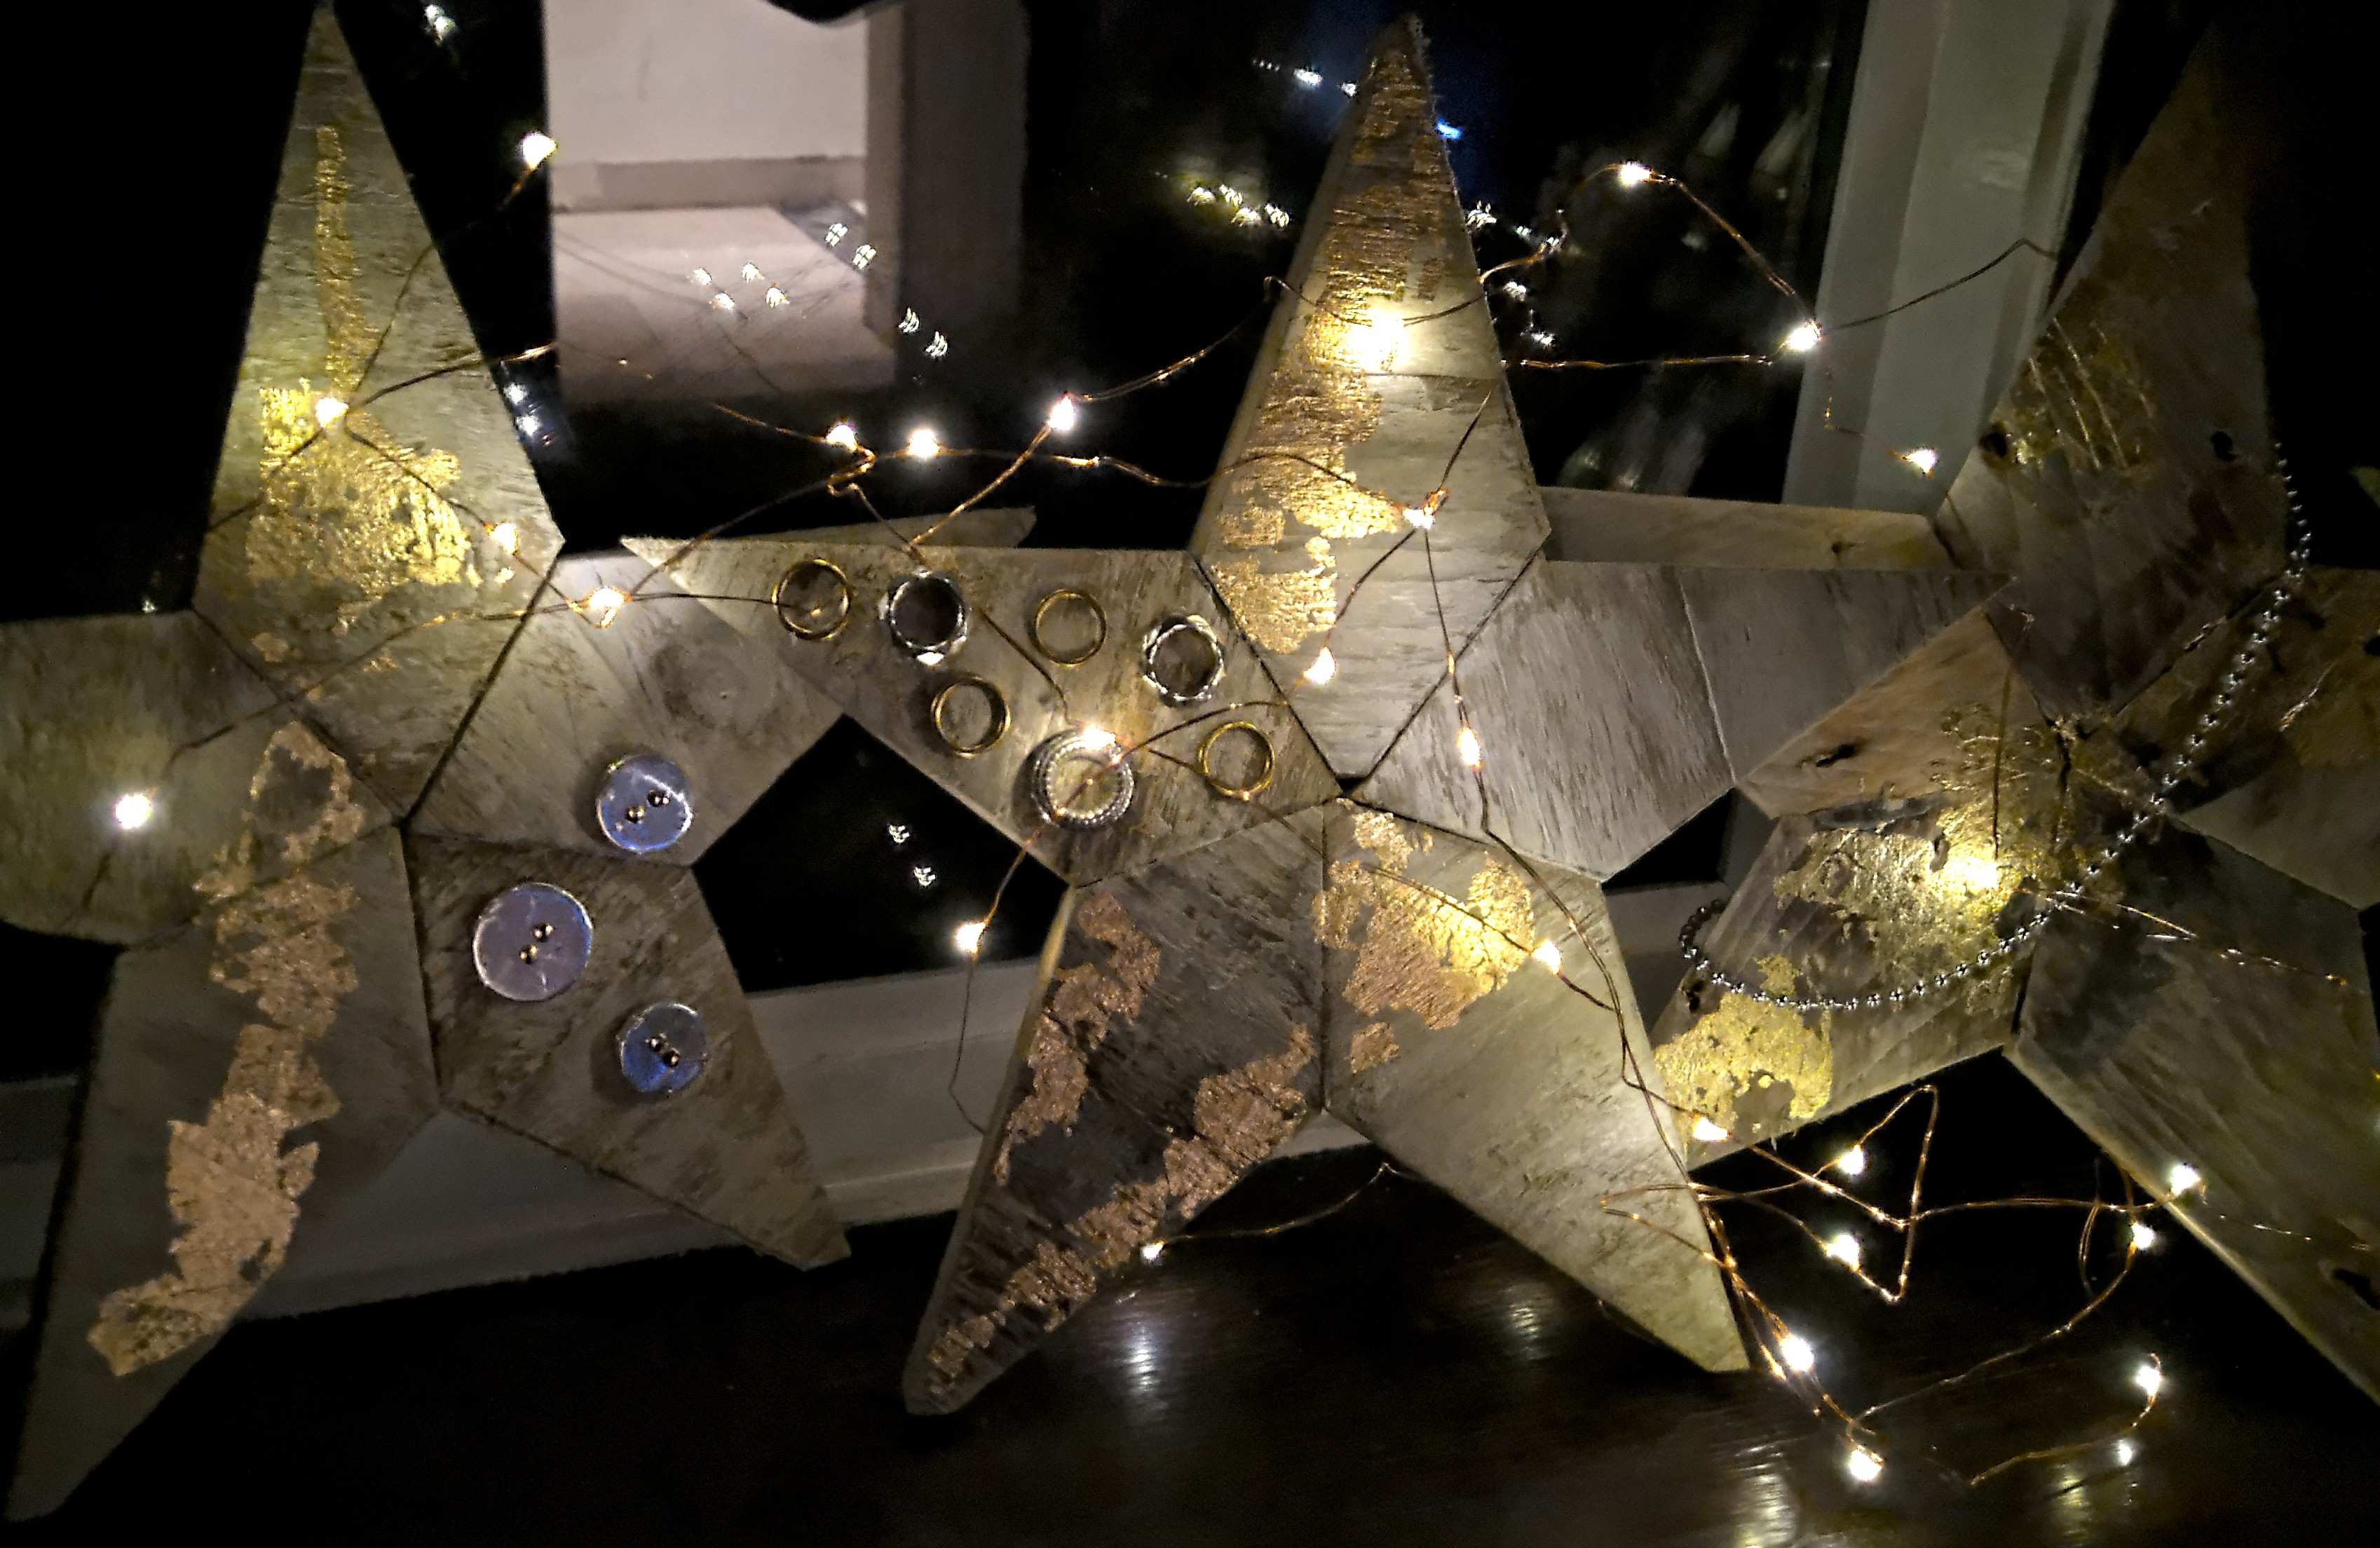 Bev's stars with fairy lights